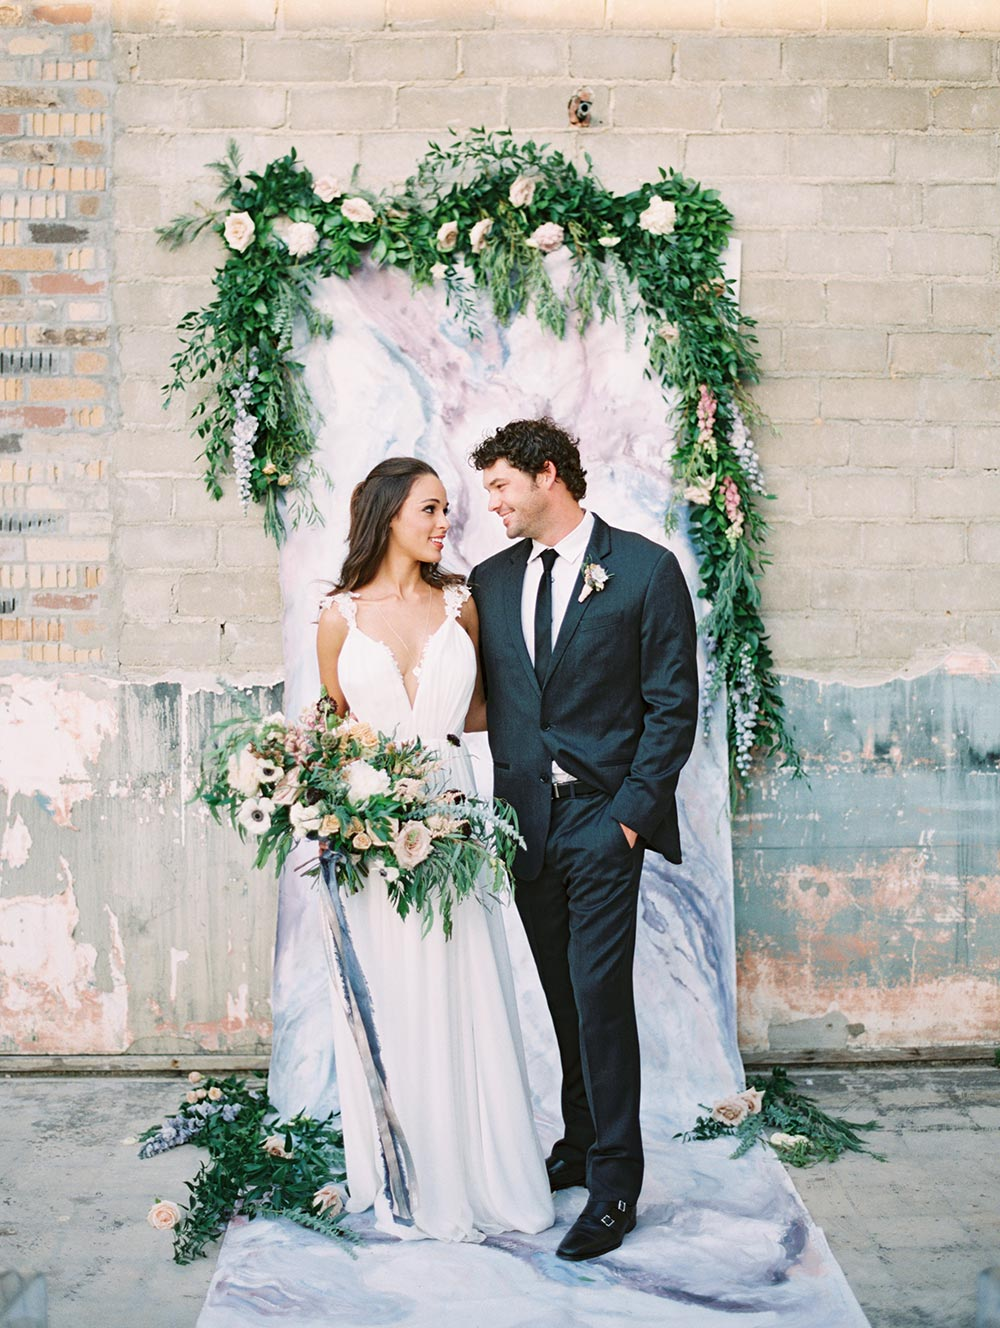 marble wedding backdrop with greenery garland